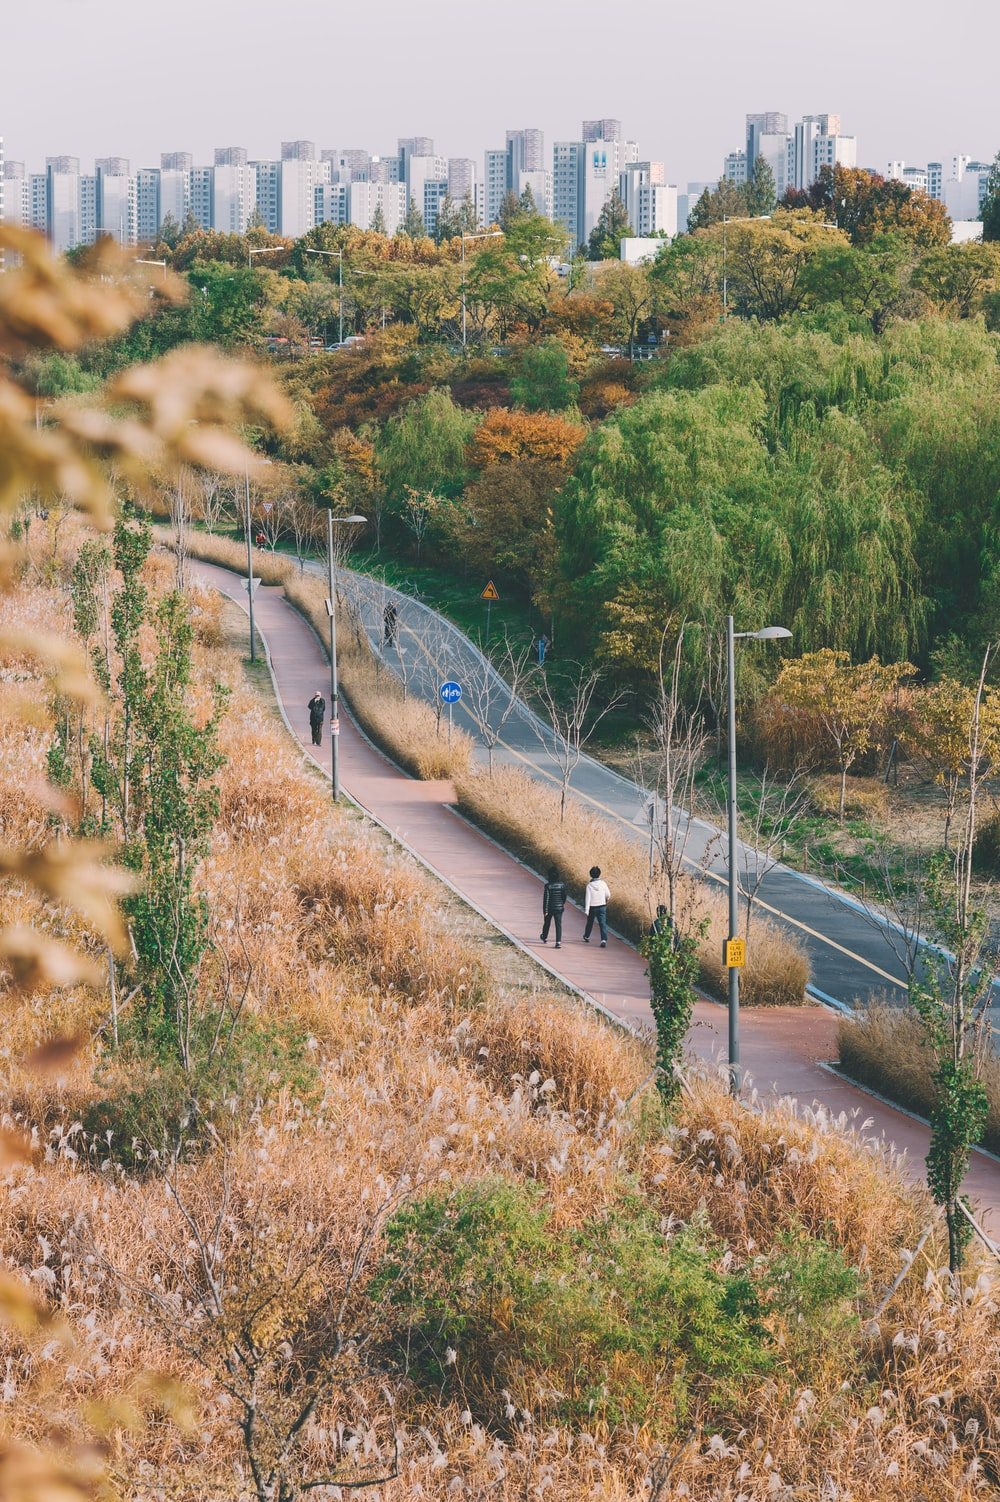 people walking on road surrounded with trees